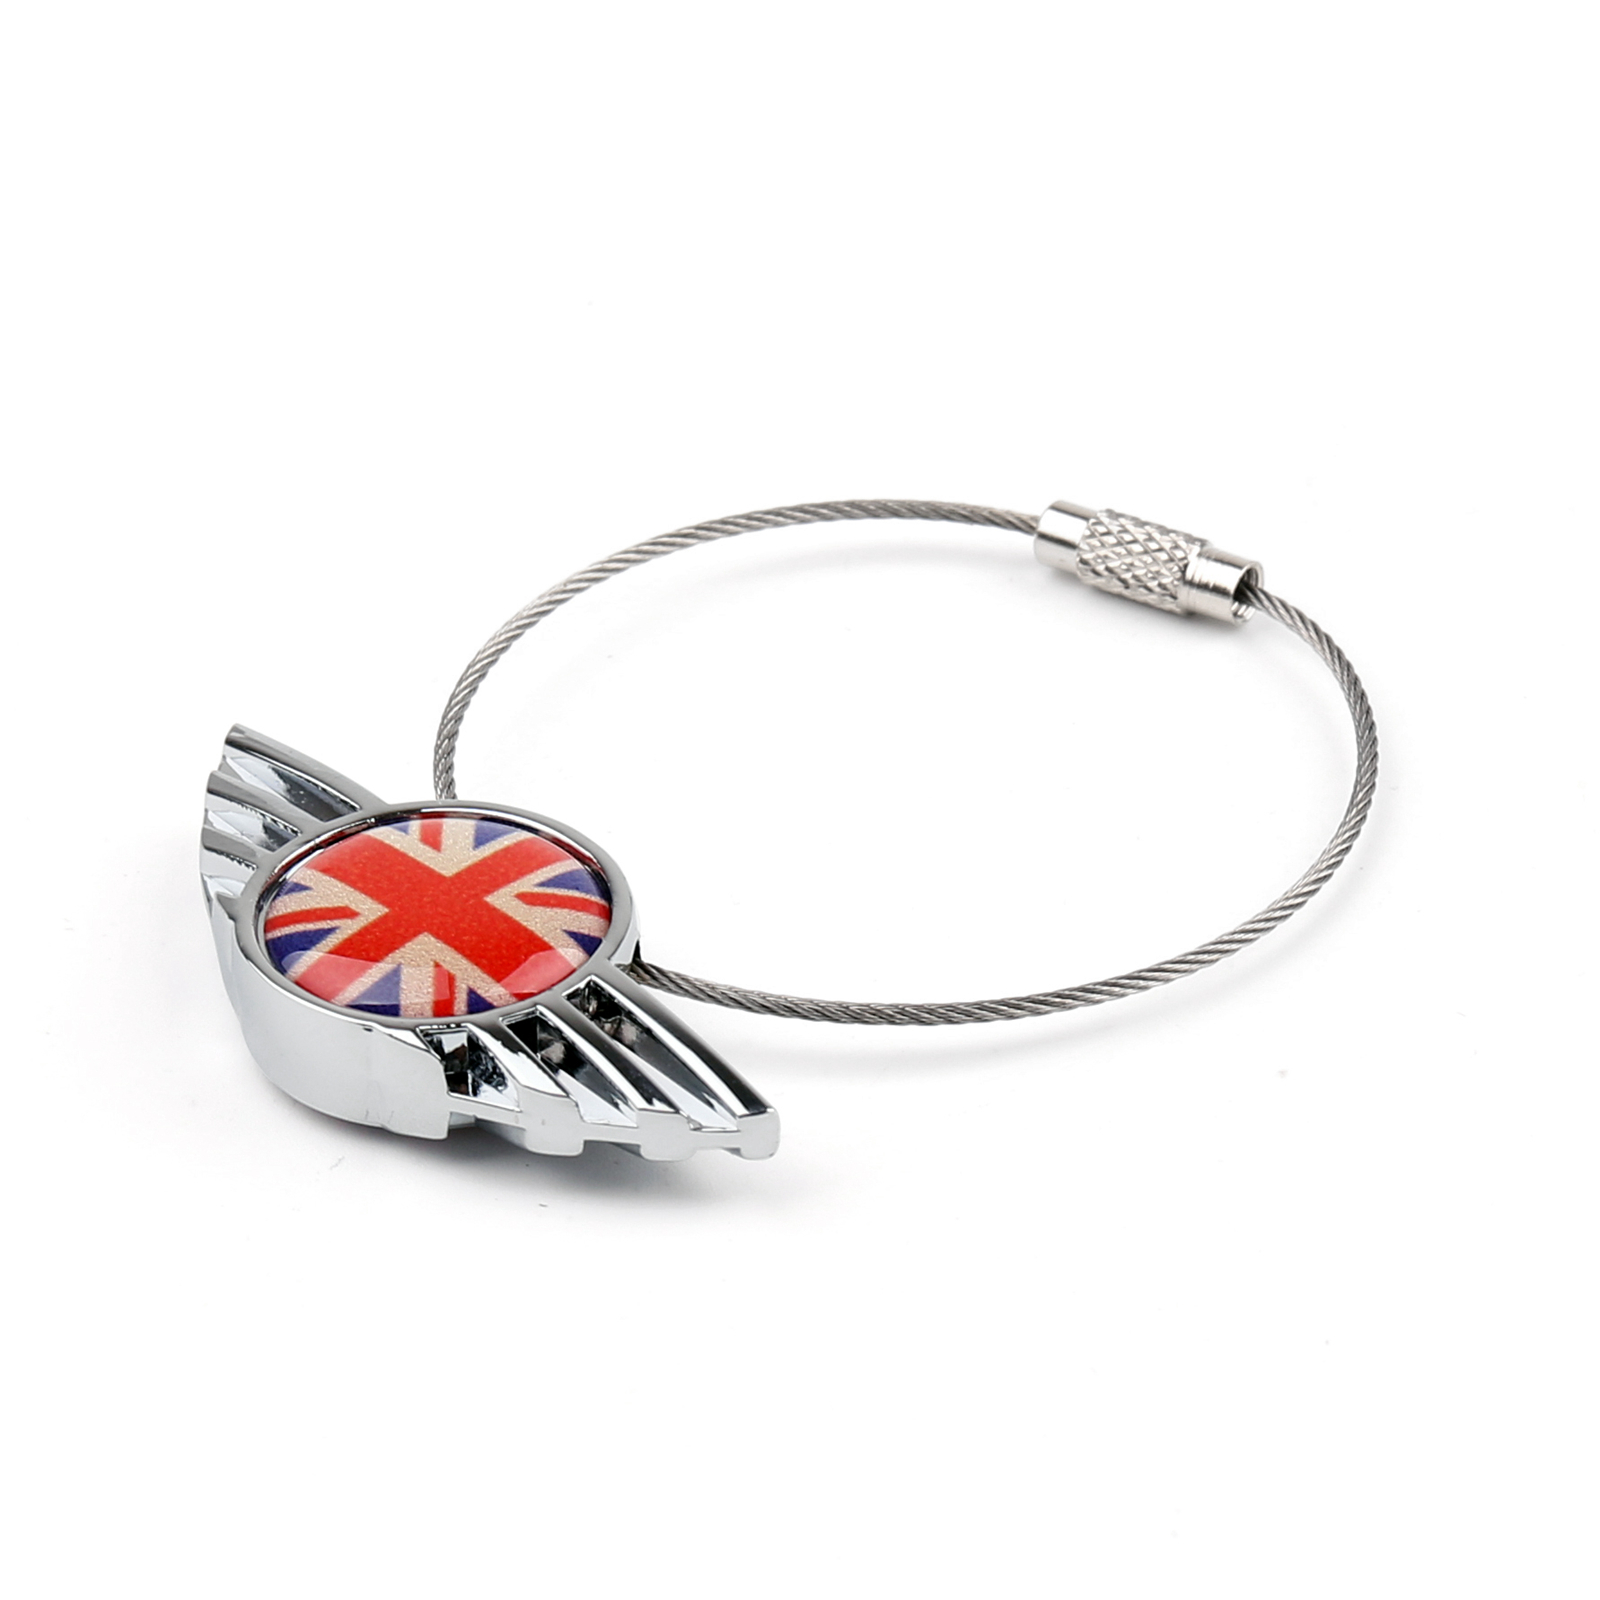 uk union jack checkered wing porte cl s cha ne keychain ring pour mini cooper ebay. Black Bedroom Furniture Sets. Home Design Ideas